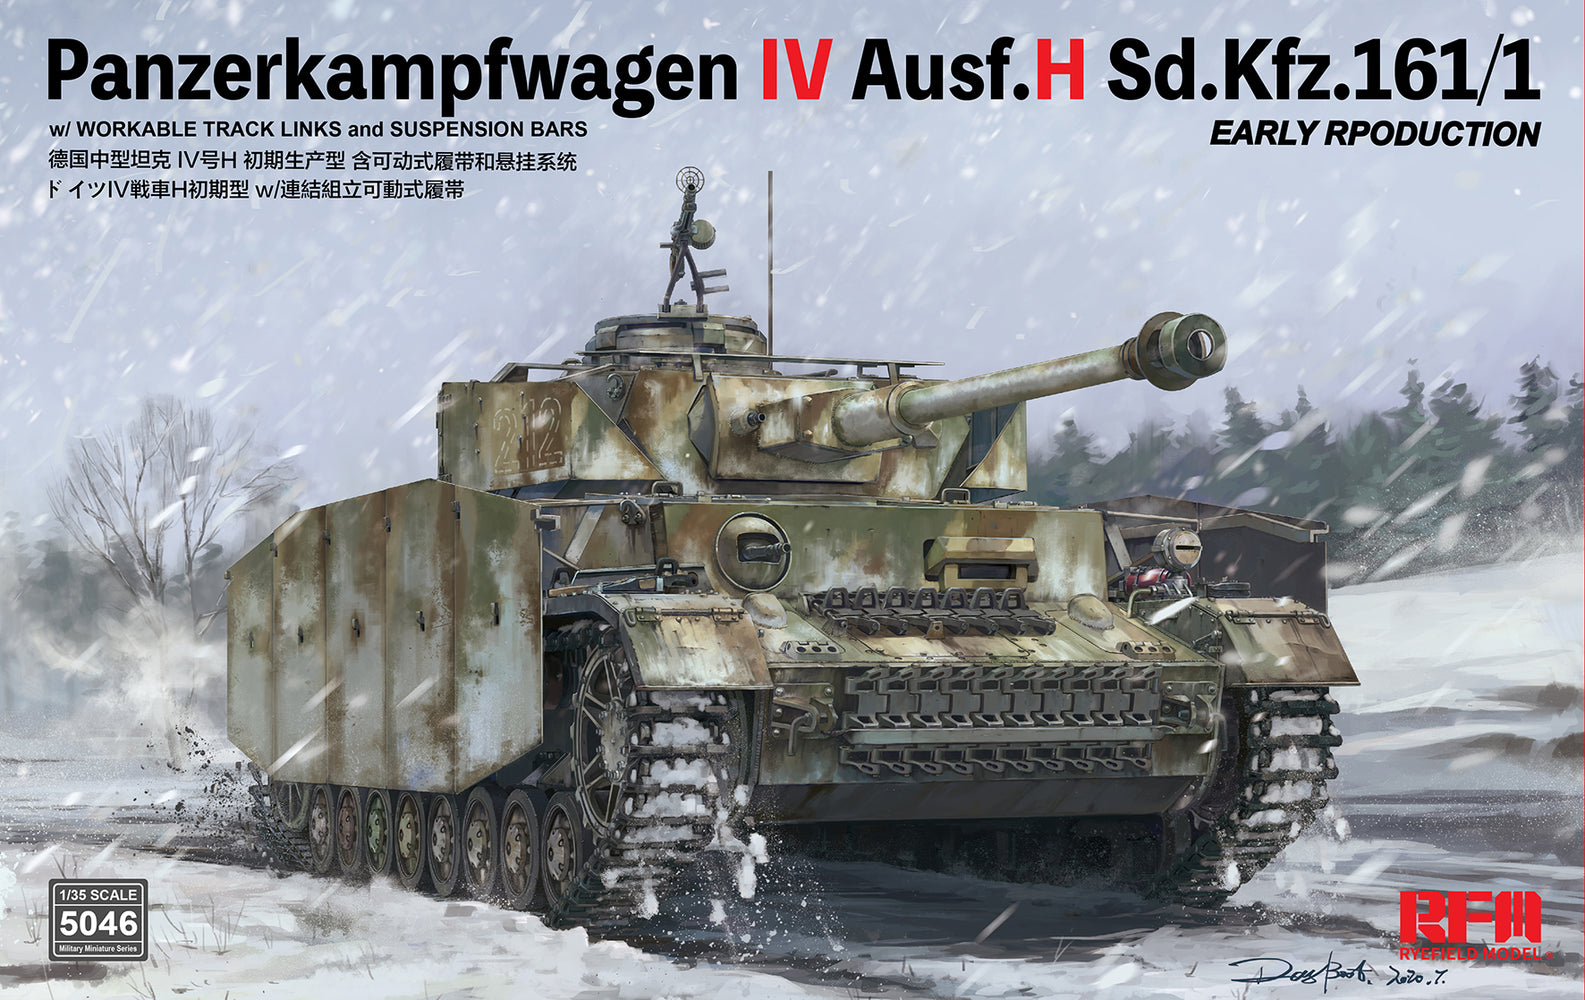 1/35 Pz.kpfw.IV Ausf.H early production w/workable track links by RyeFoeld